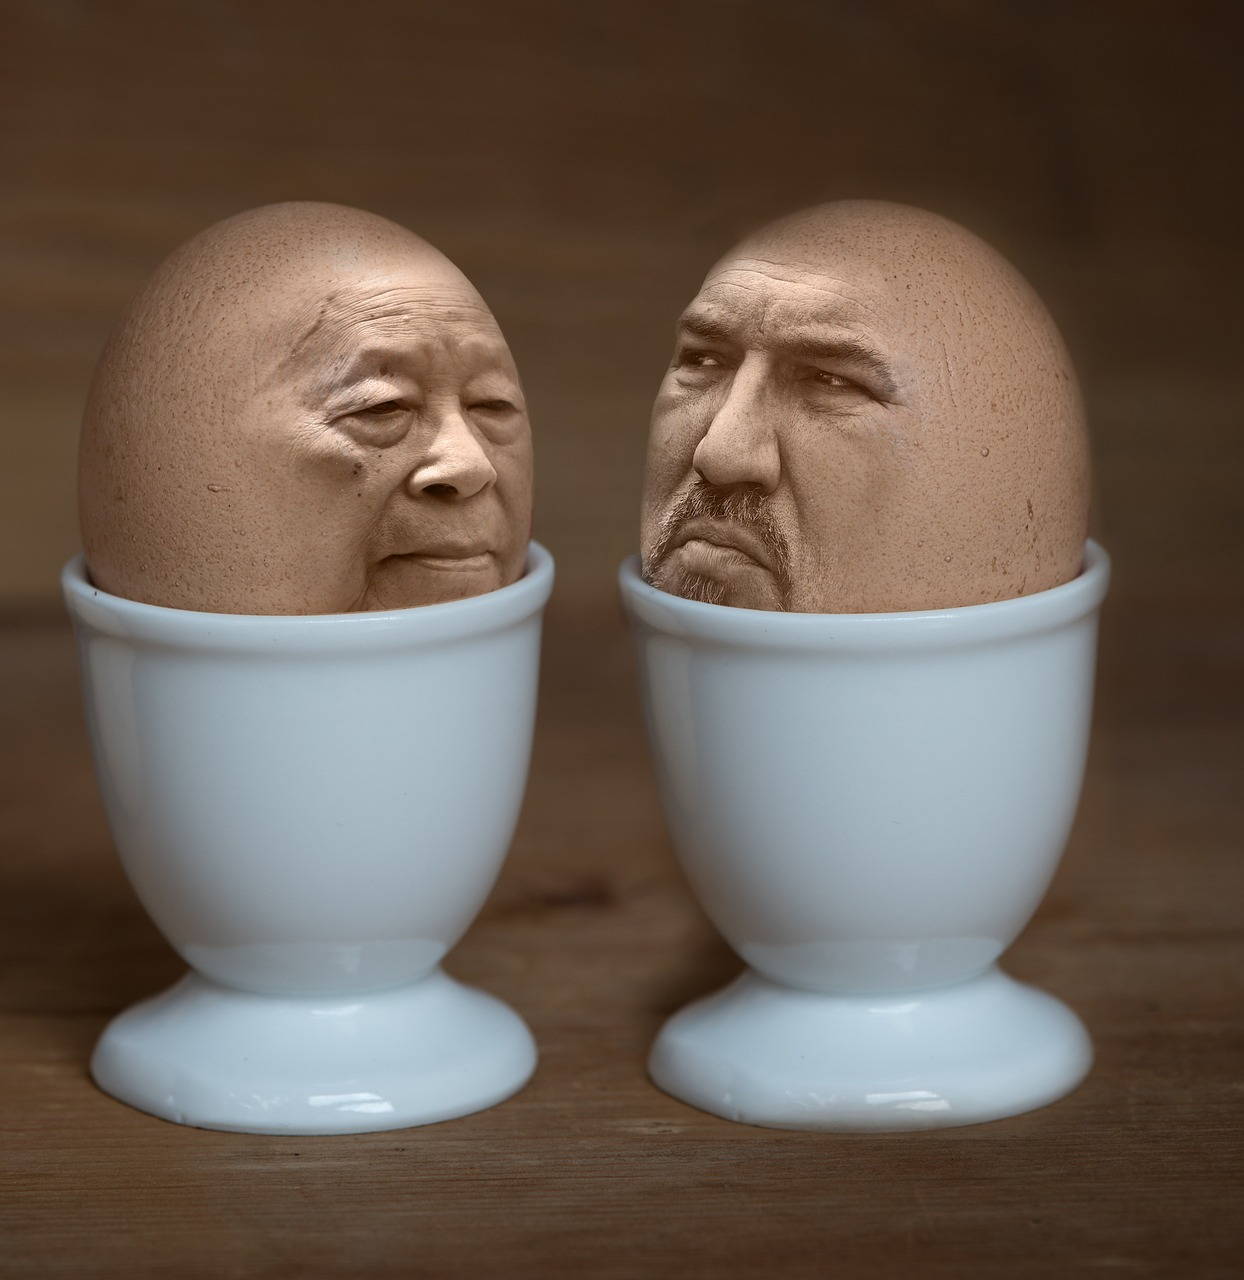 Two men in egg cups